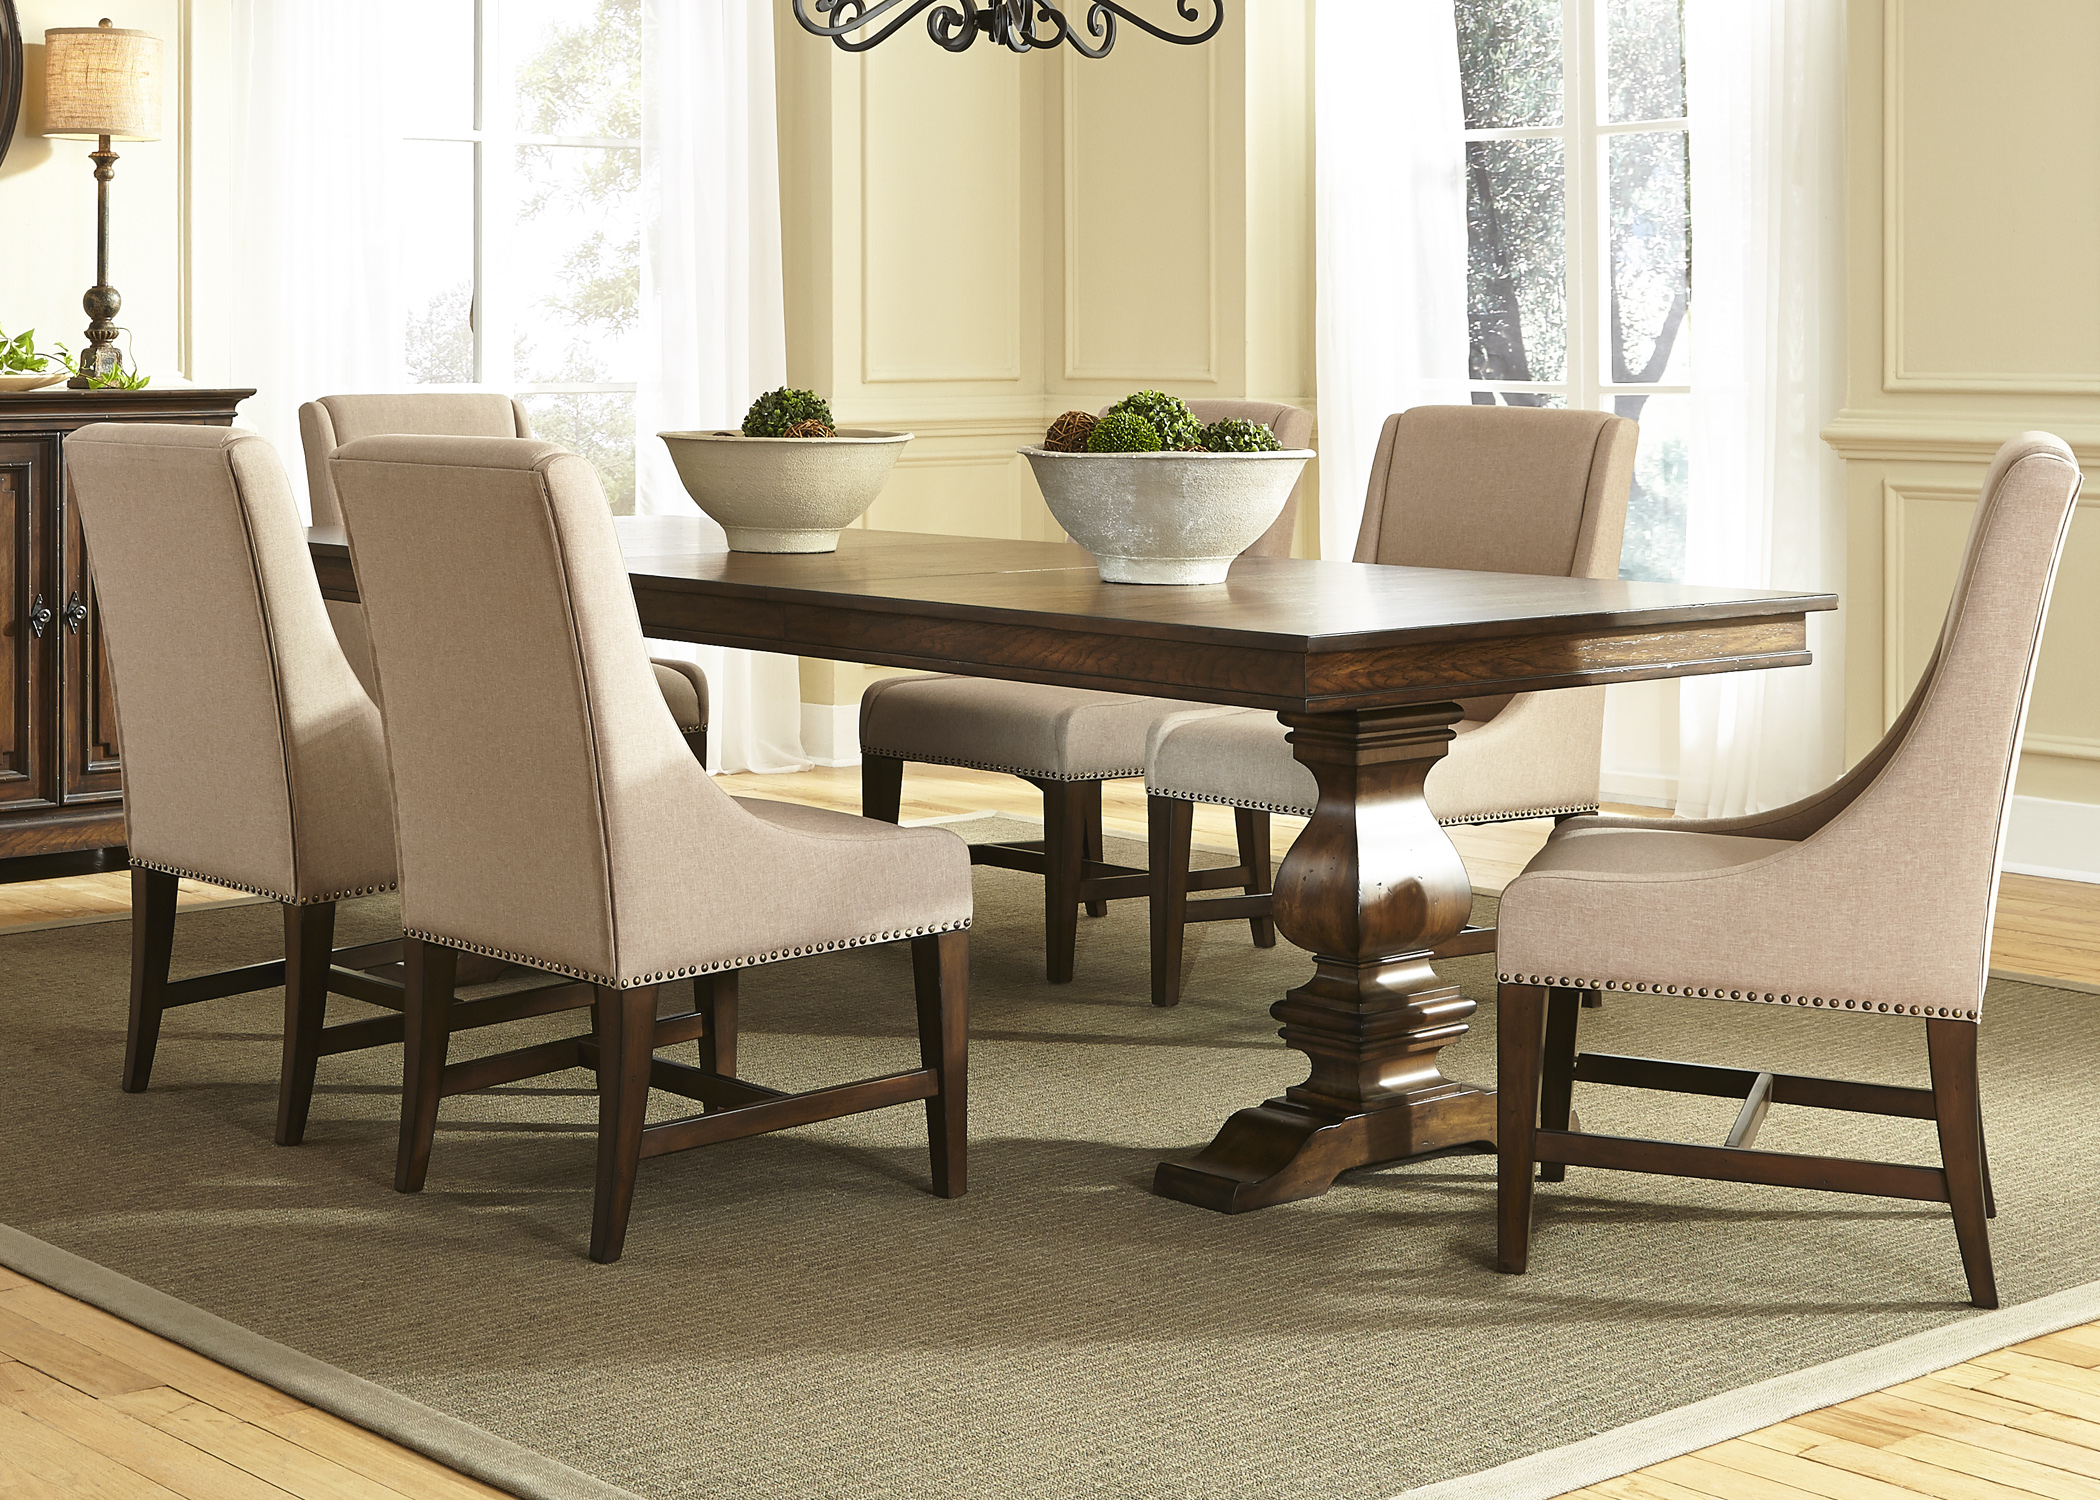 Armand 7 Piece Trestle Table Set by Liberty Furniture at Suburban Furniture